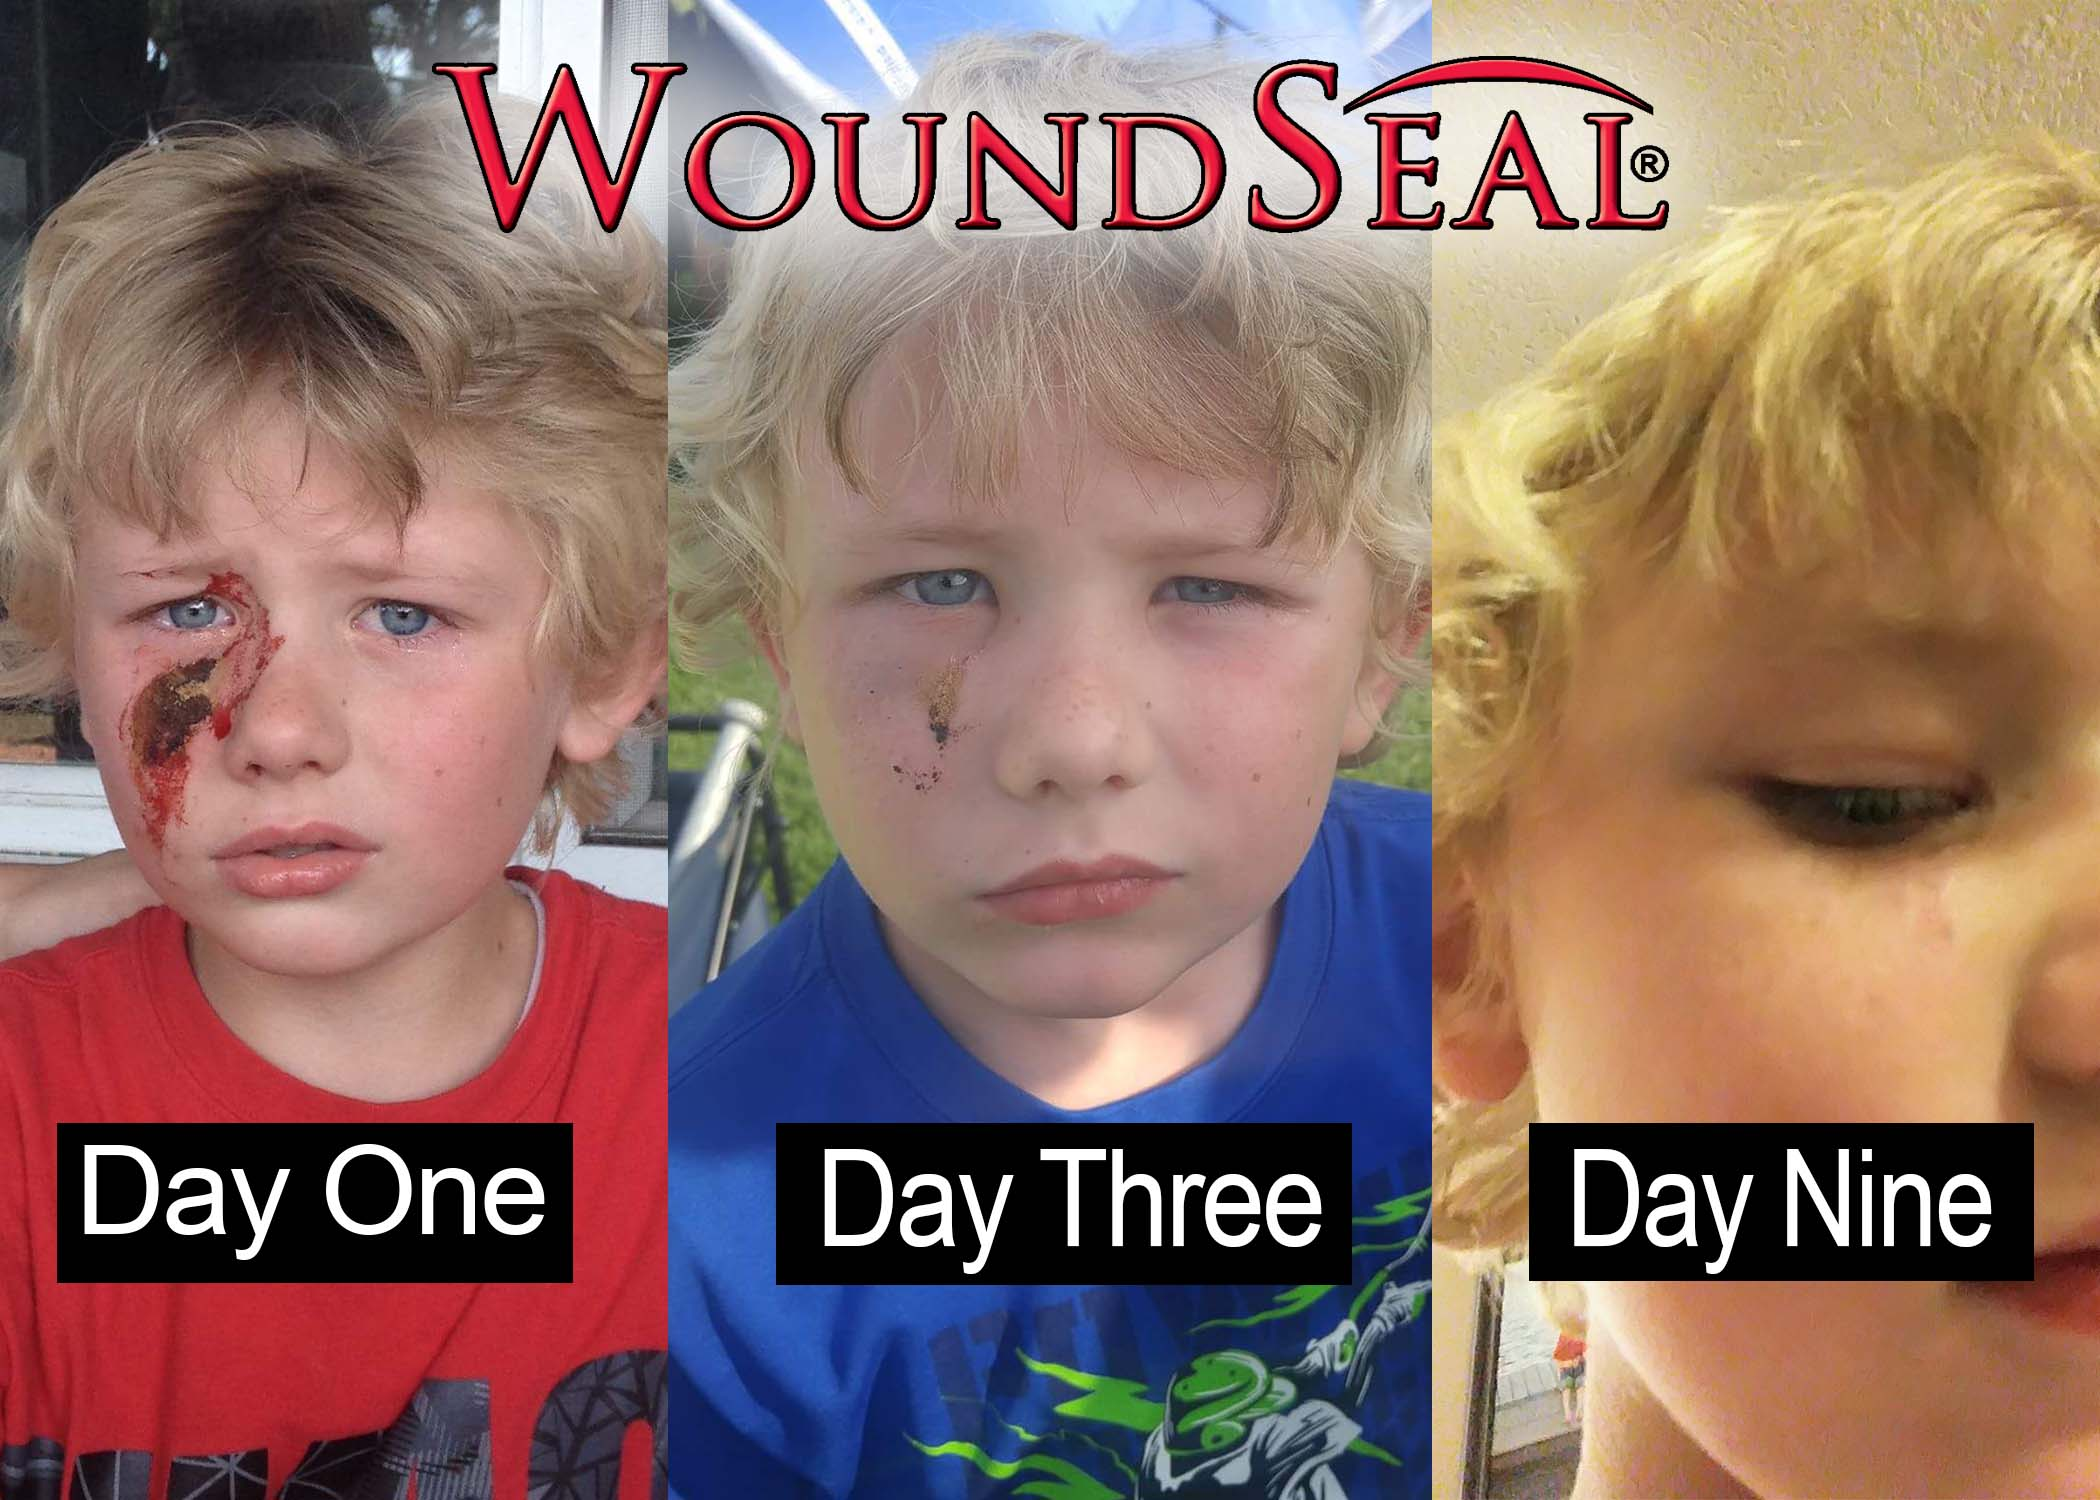 wound seal progression example